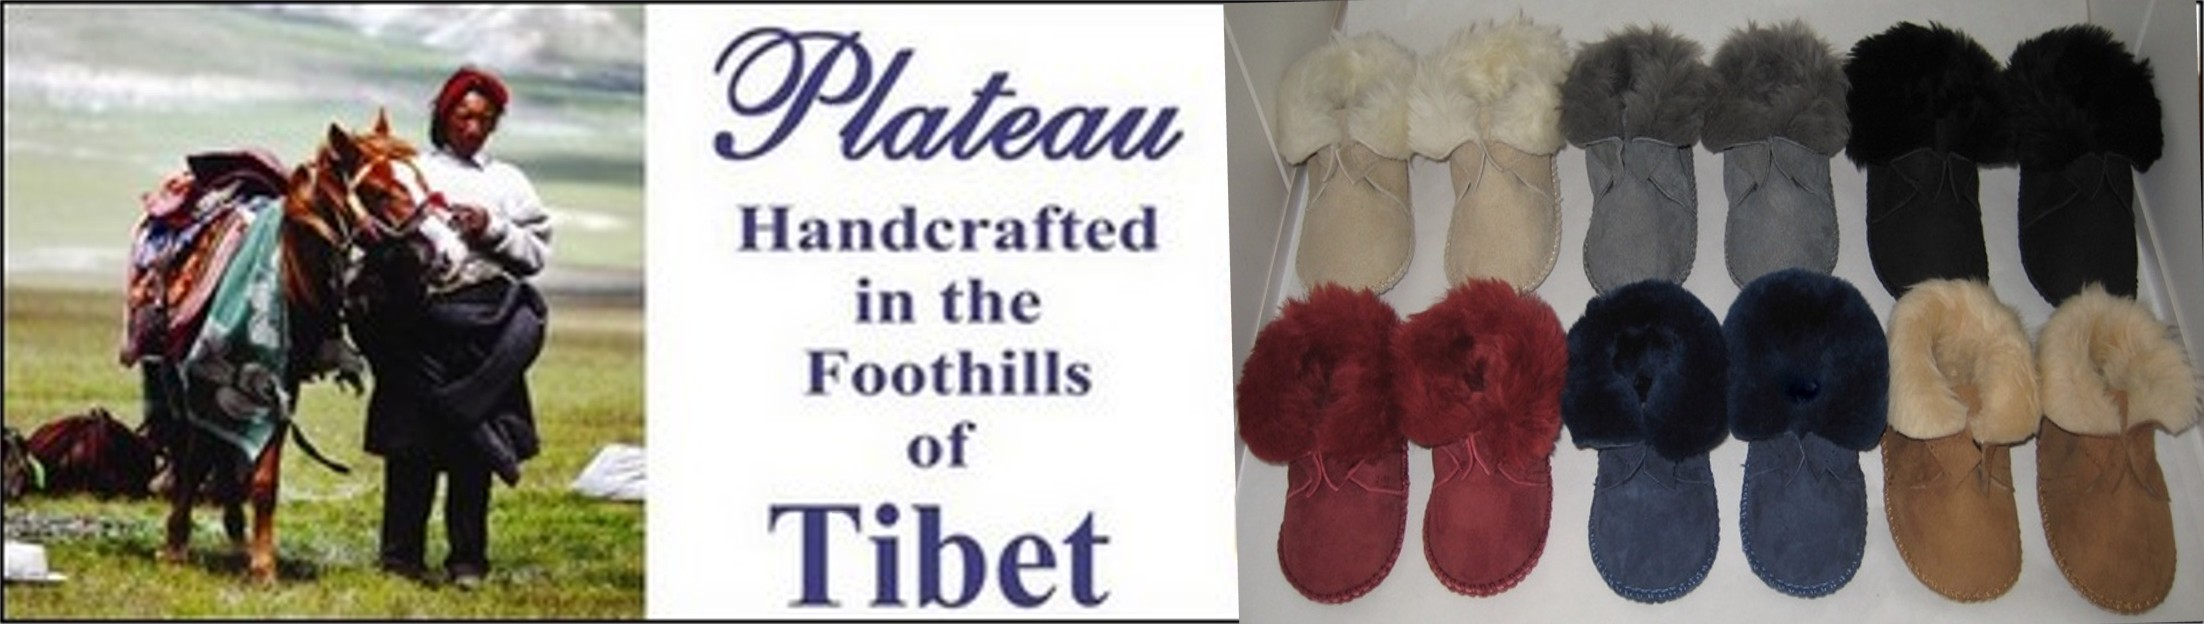 Plateau Handicrafted in the foothills of Tibet